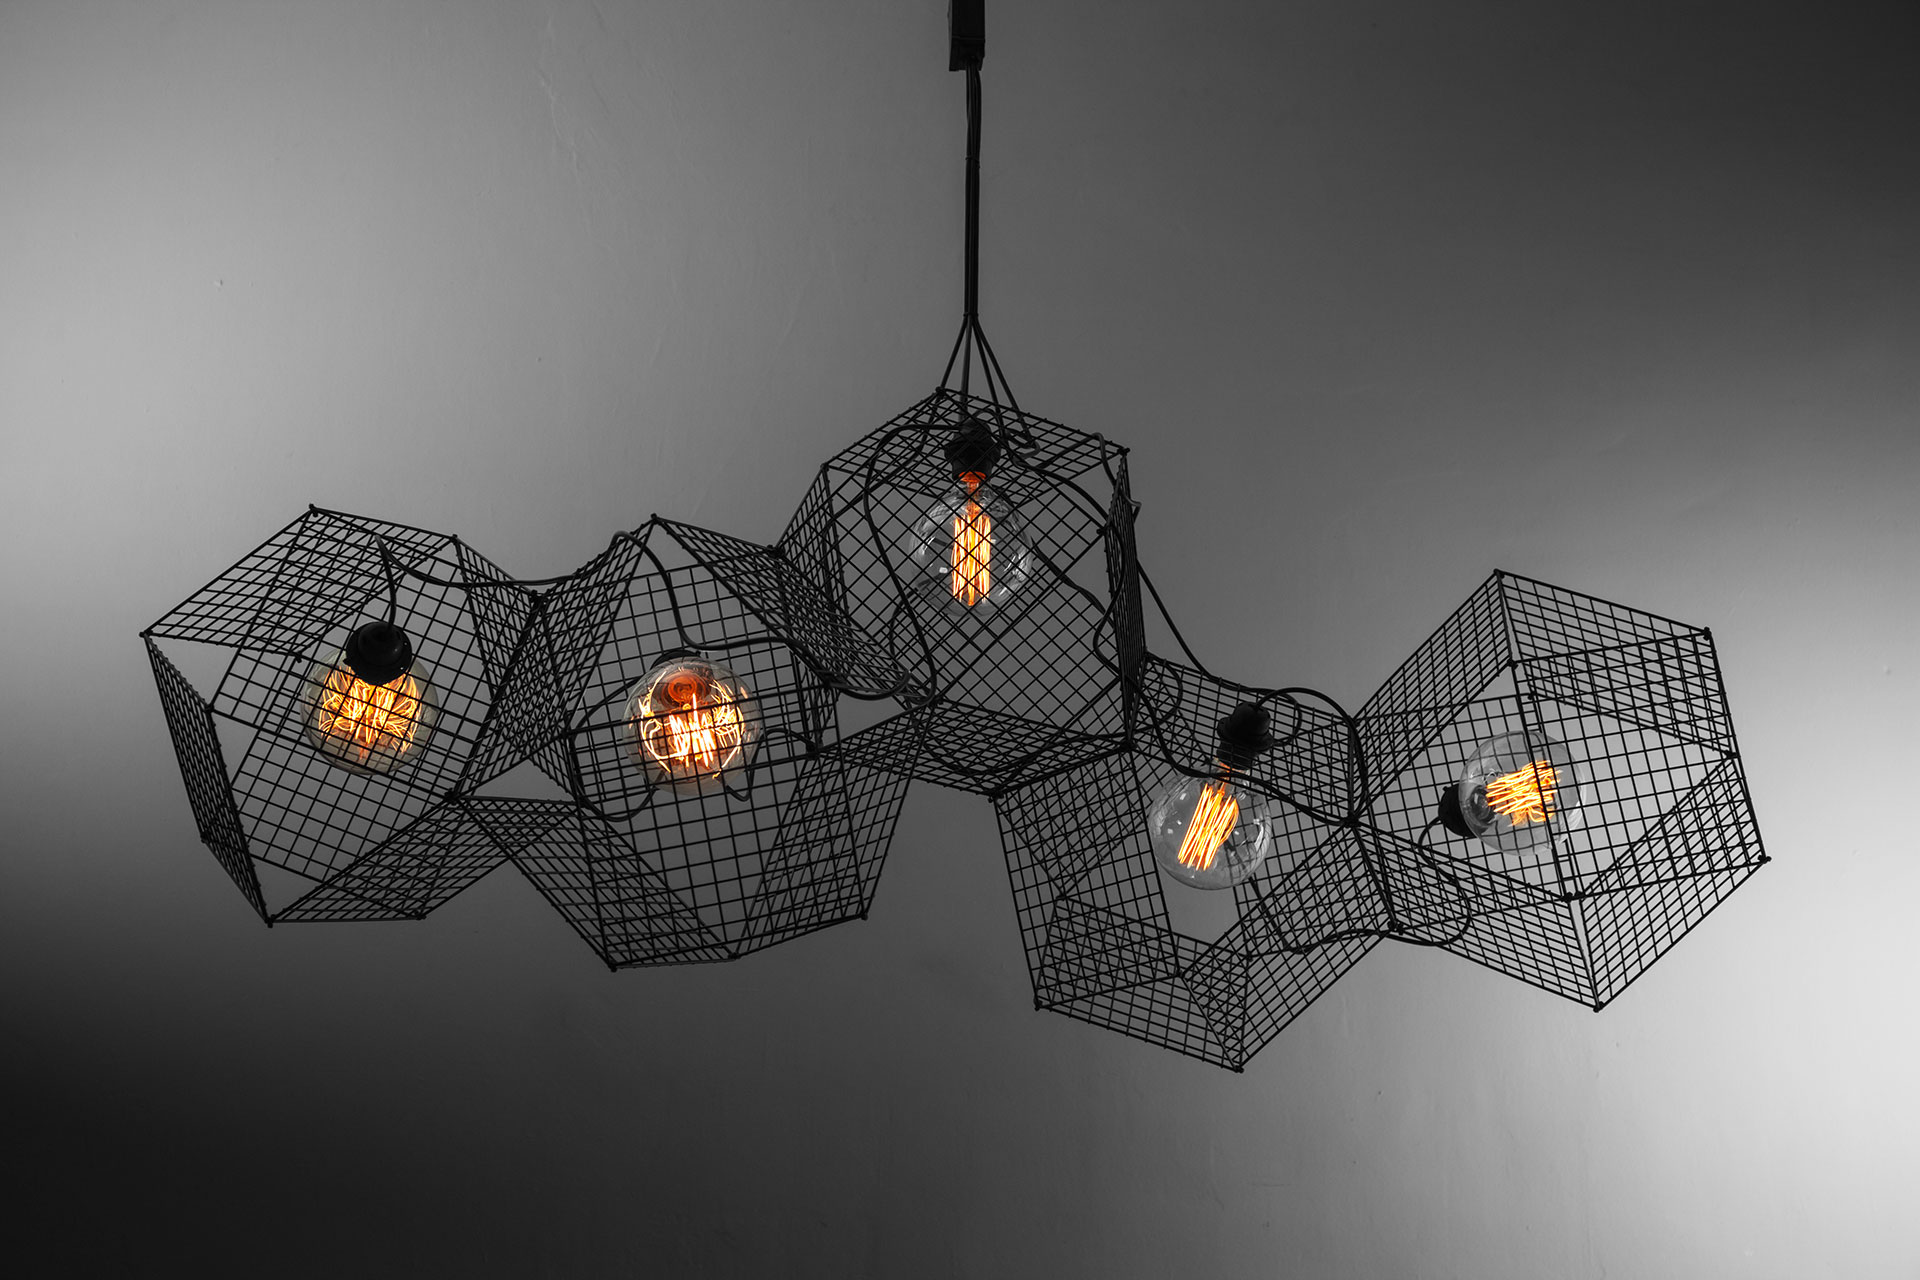 Large cyberpunk ceiling lamp with Edison bulbs inspired by industrial design